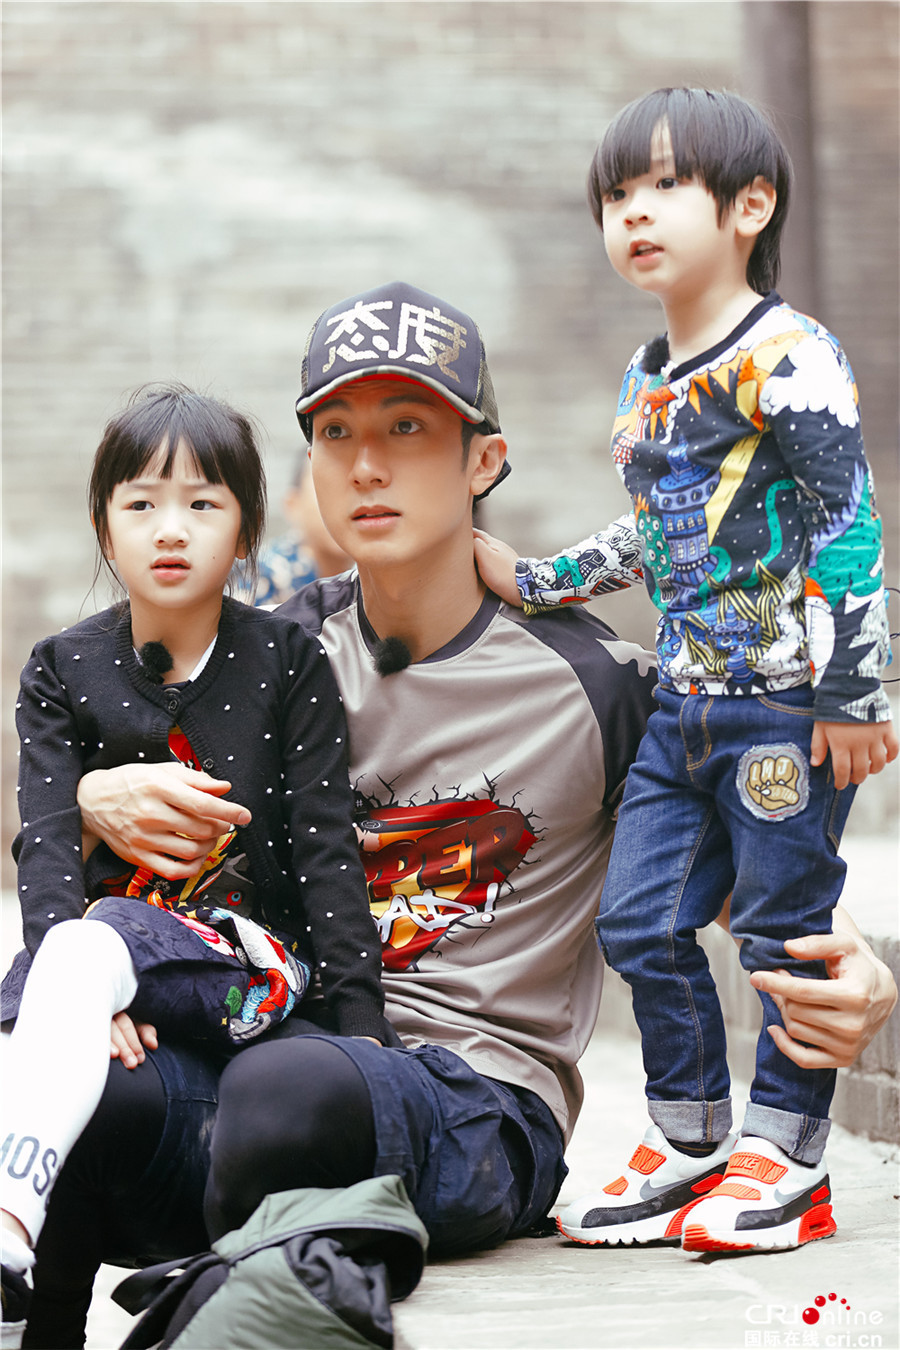 Wu Chun (middle) with his children Nei Nei (left) and Max (right).